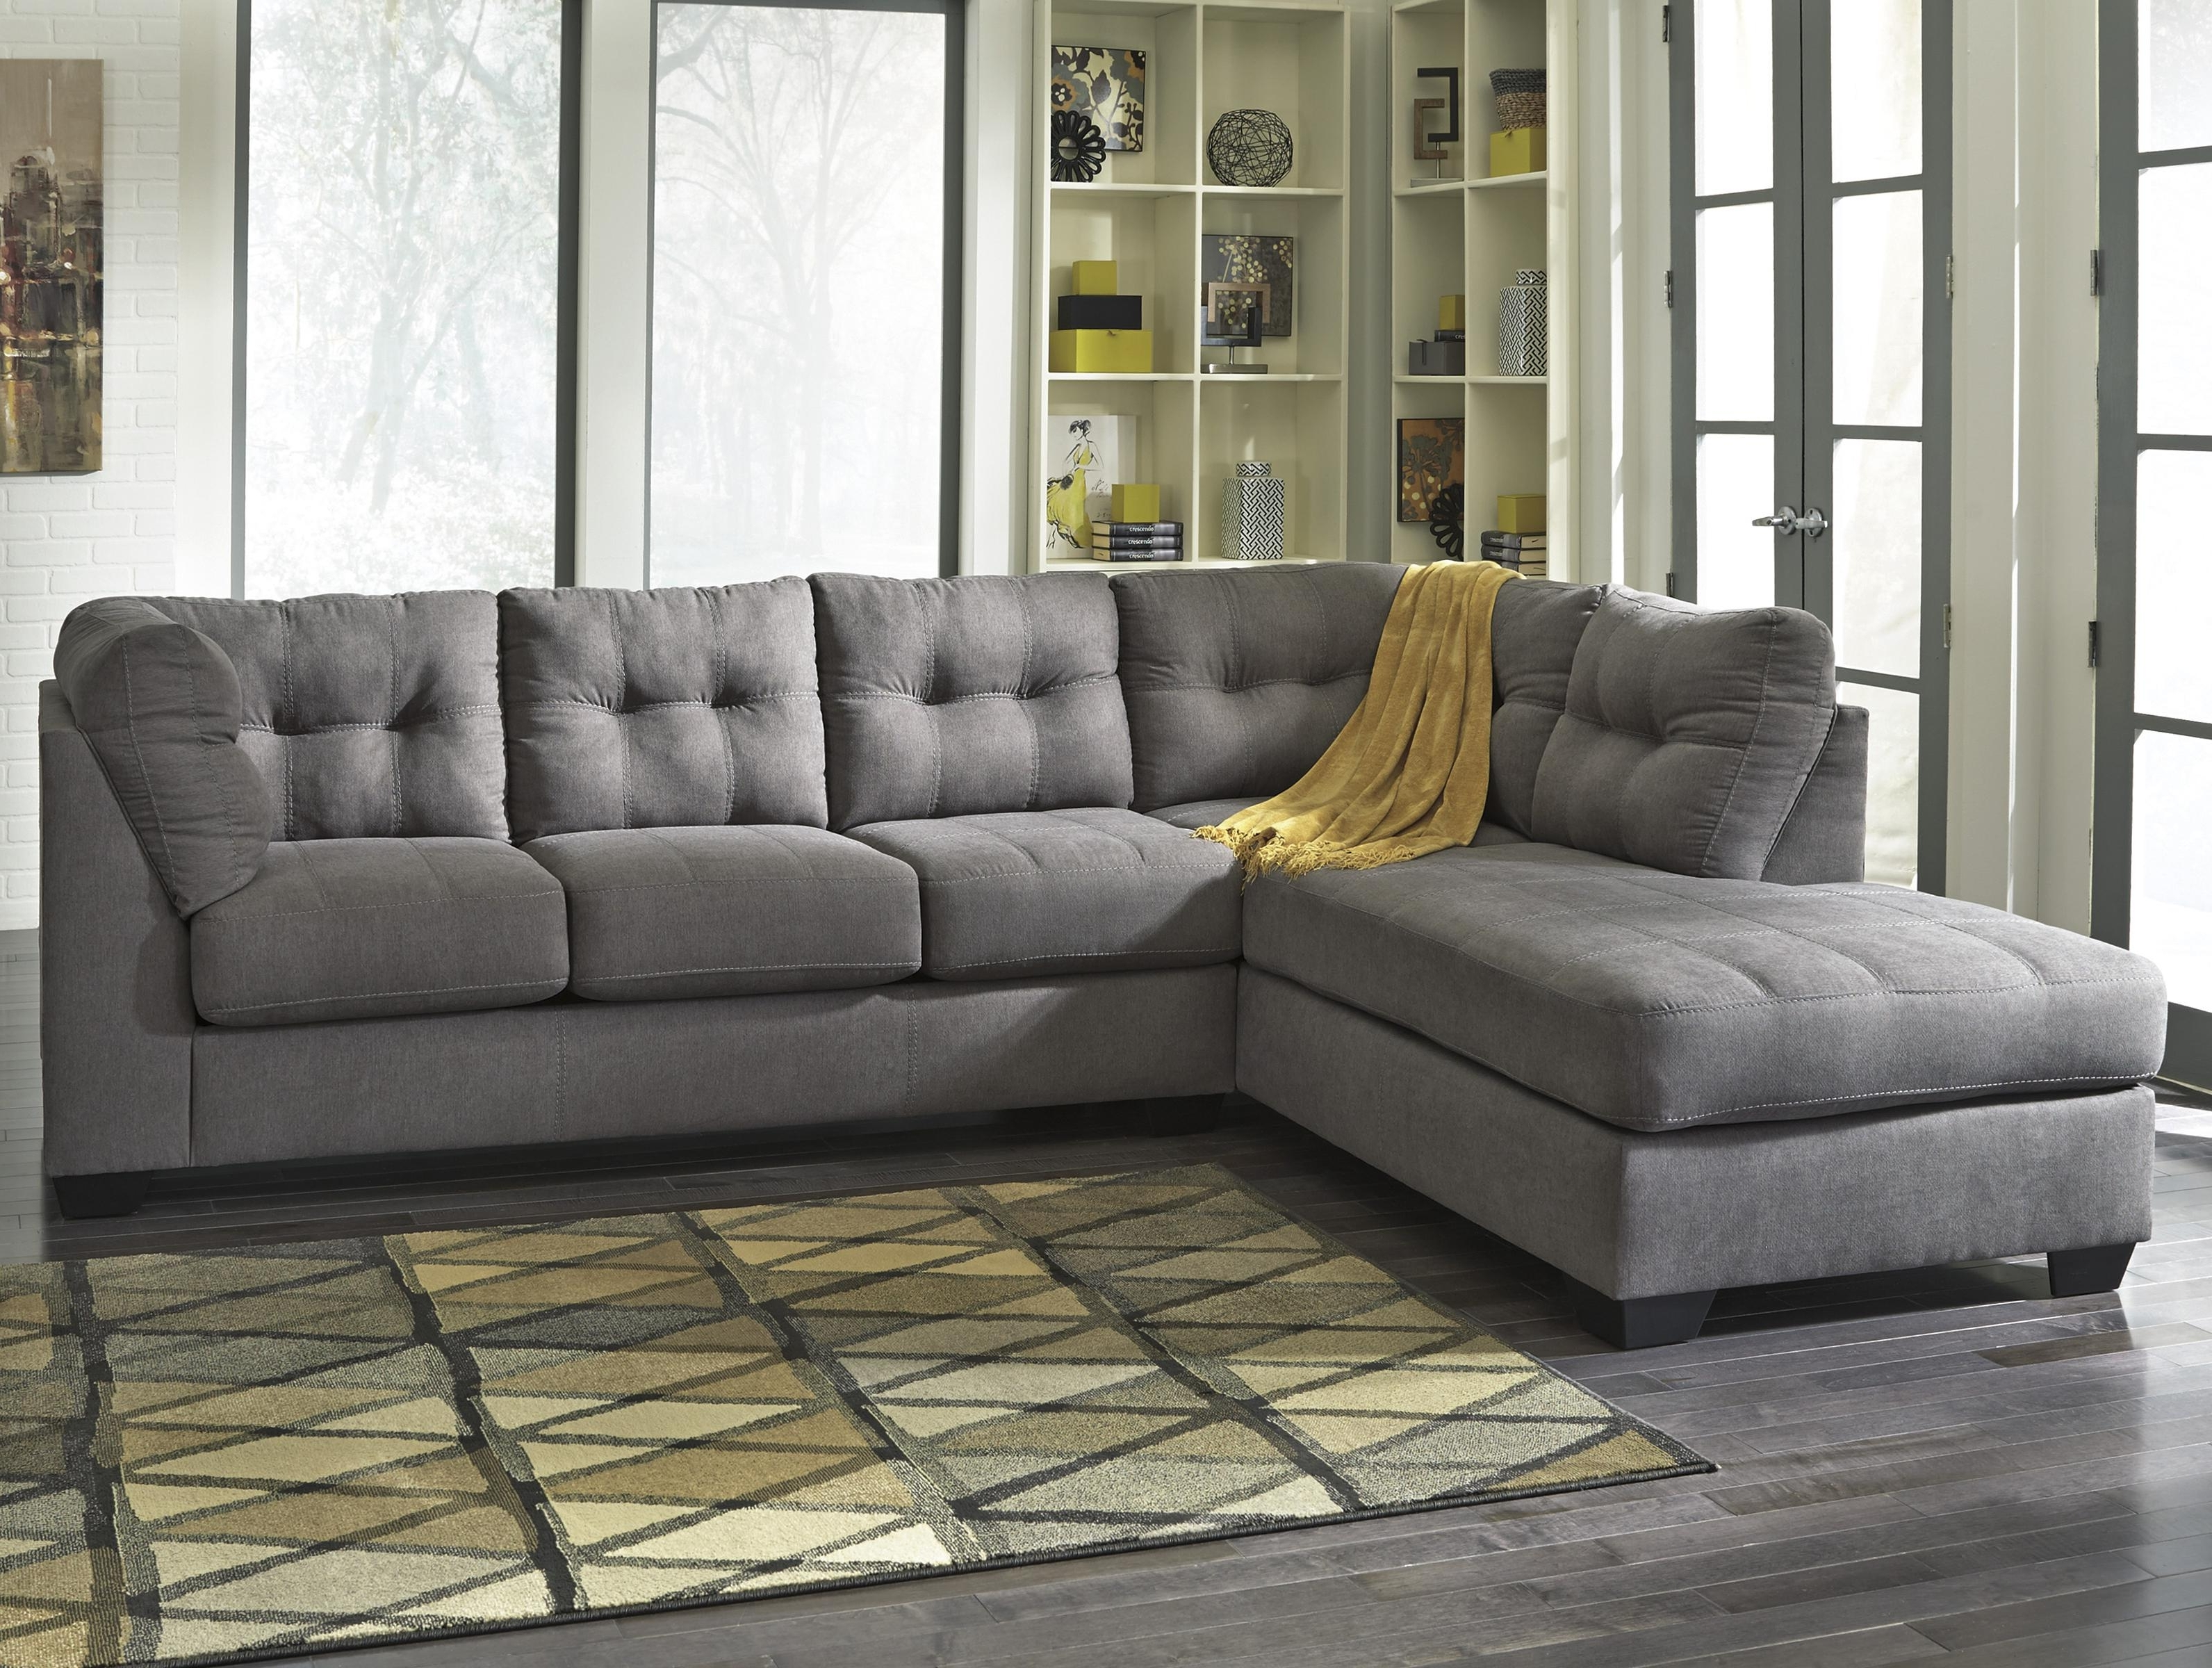 Most Recent Benchcraftashley Maier – Charcoal 2 Piece Sectional With Left In Jackson Tn Sectional Sofas (View 11 of 20)